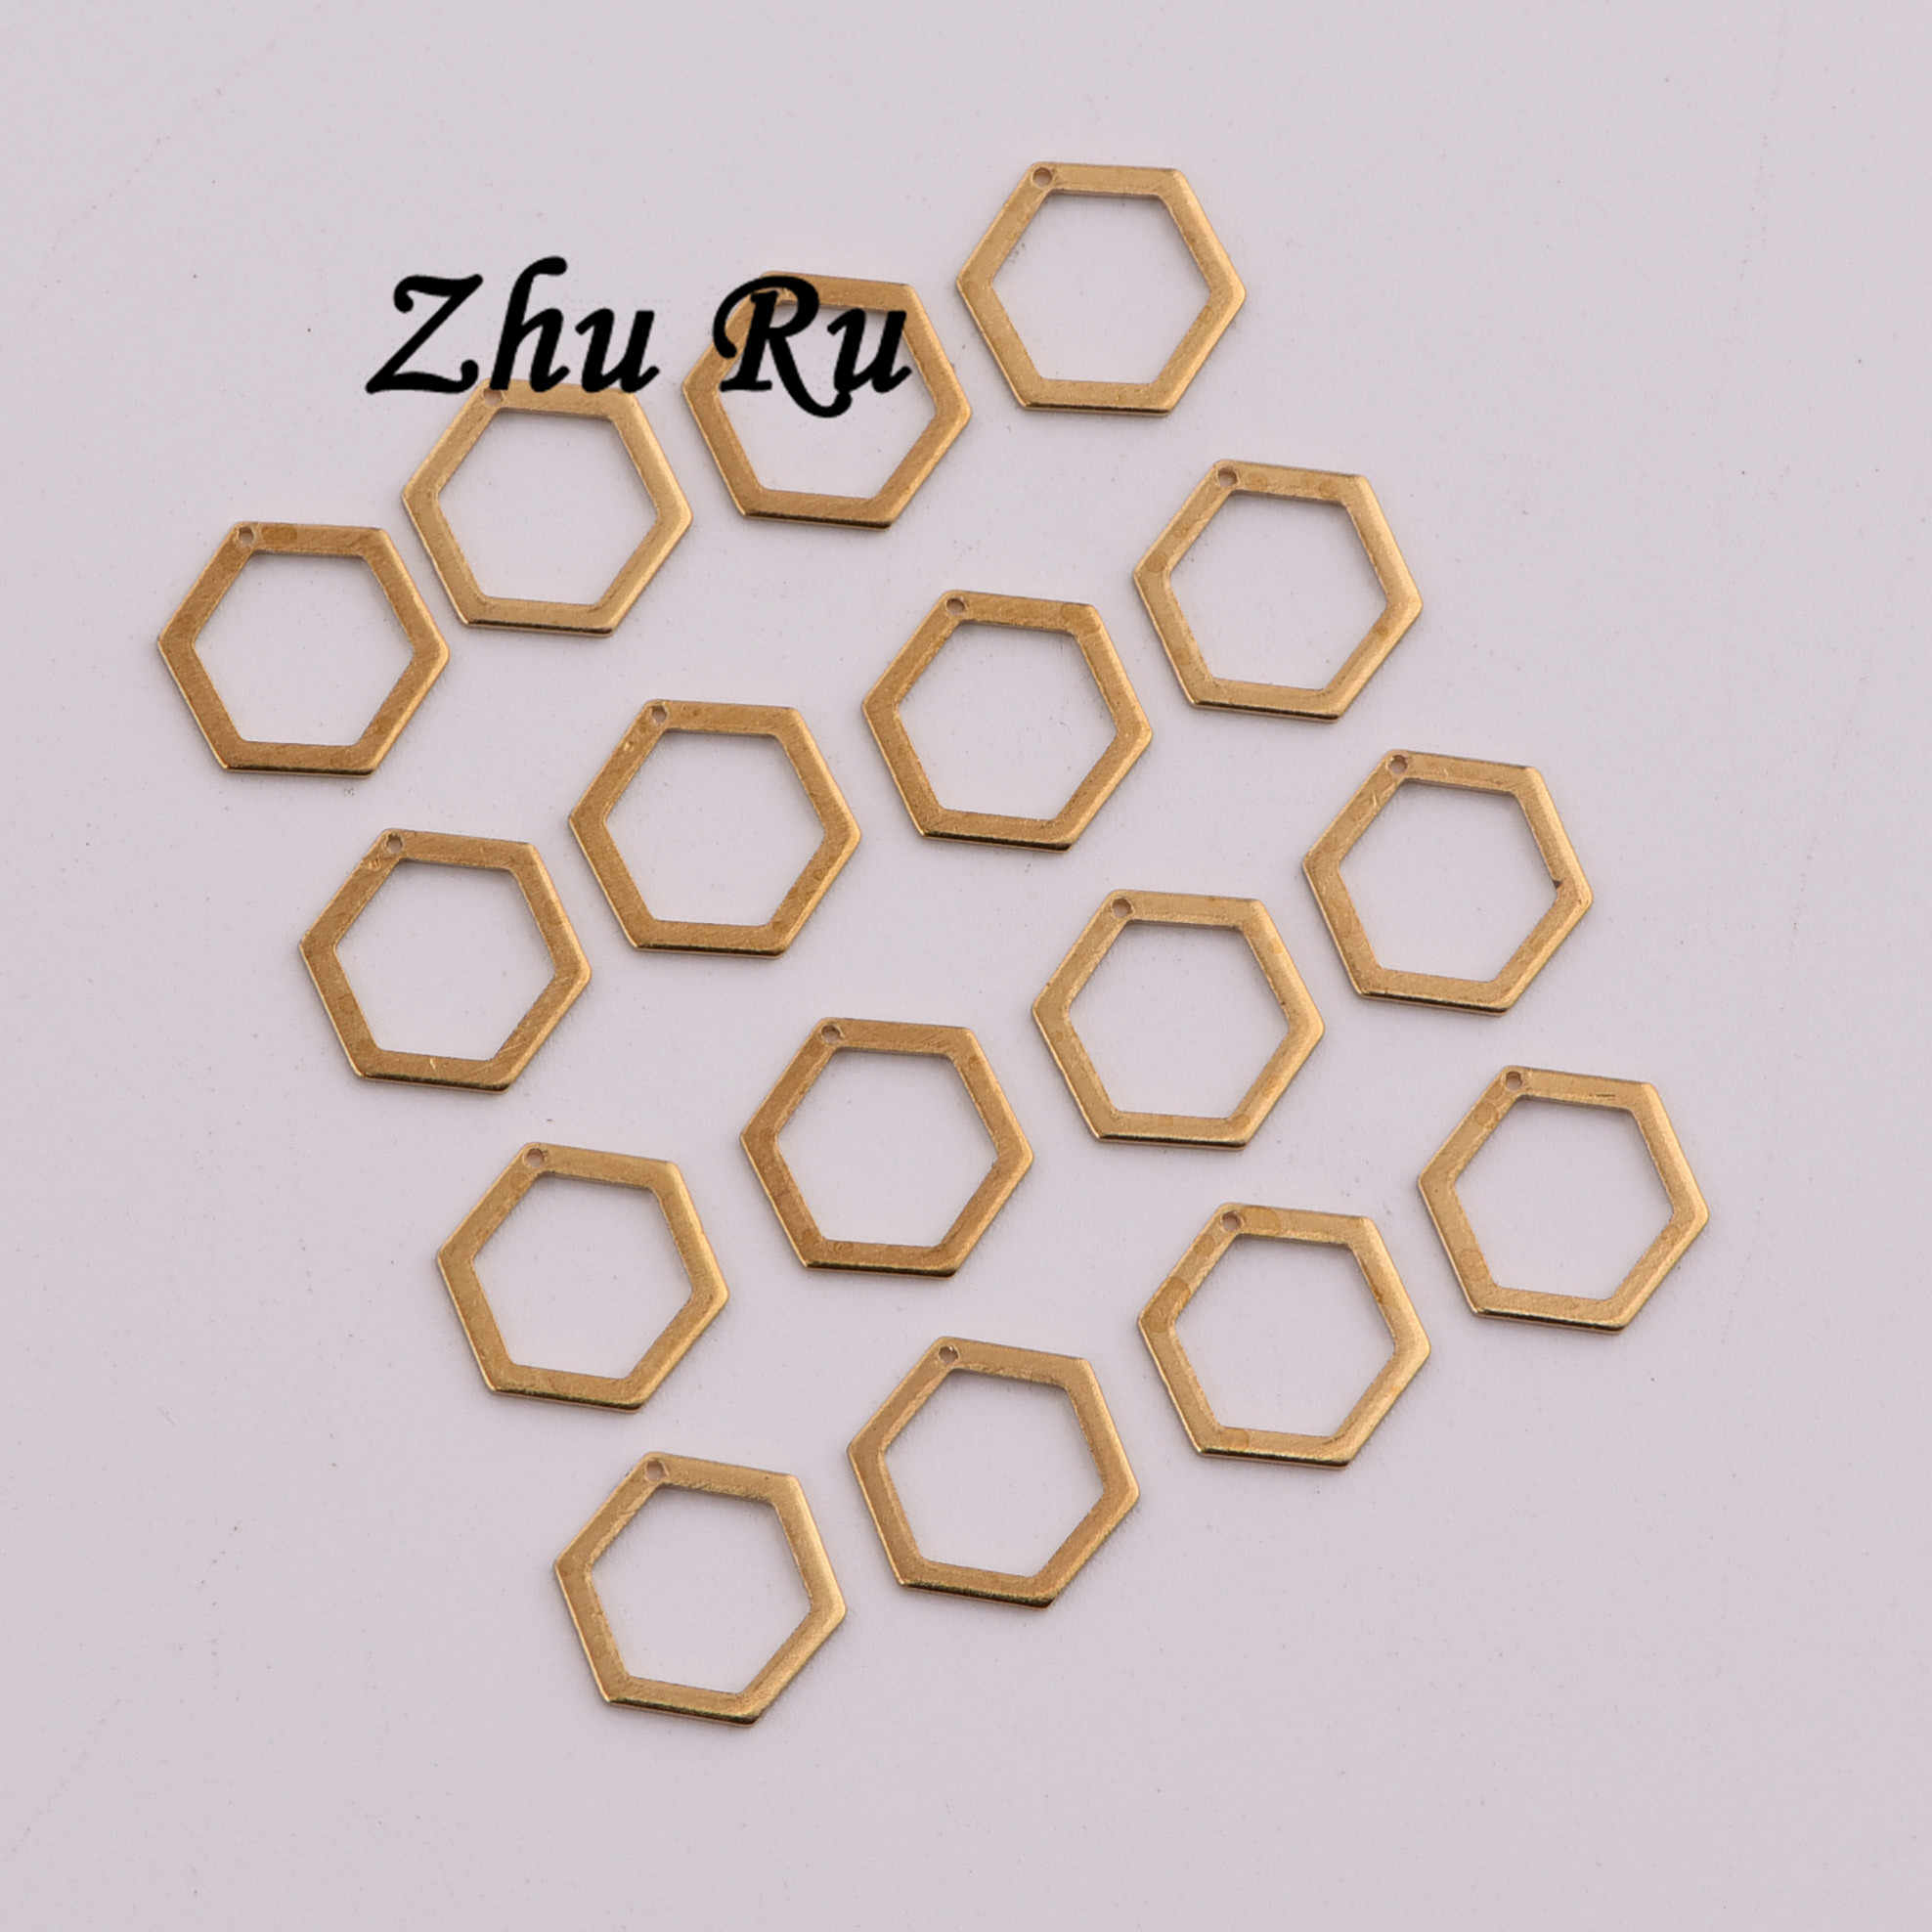 8.5mm 20pcs copper Handmade Retro hexagon ring Six-pointed star screw honeycomb crystal shape Charms For DIY Accessories